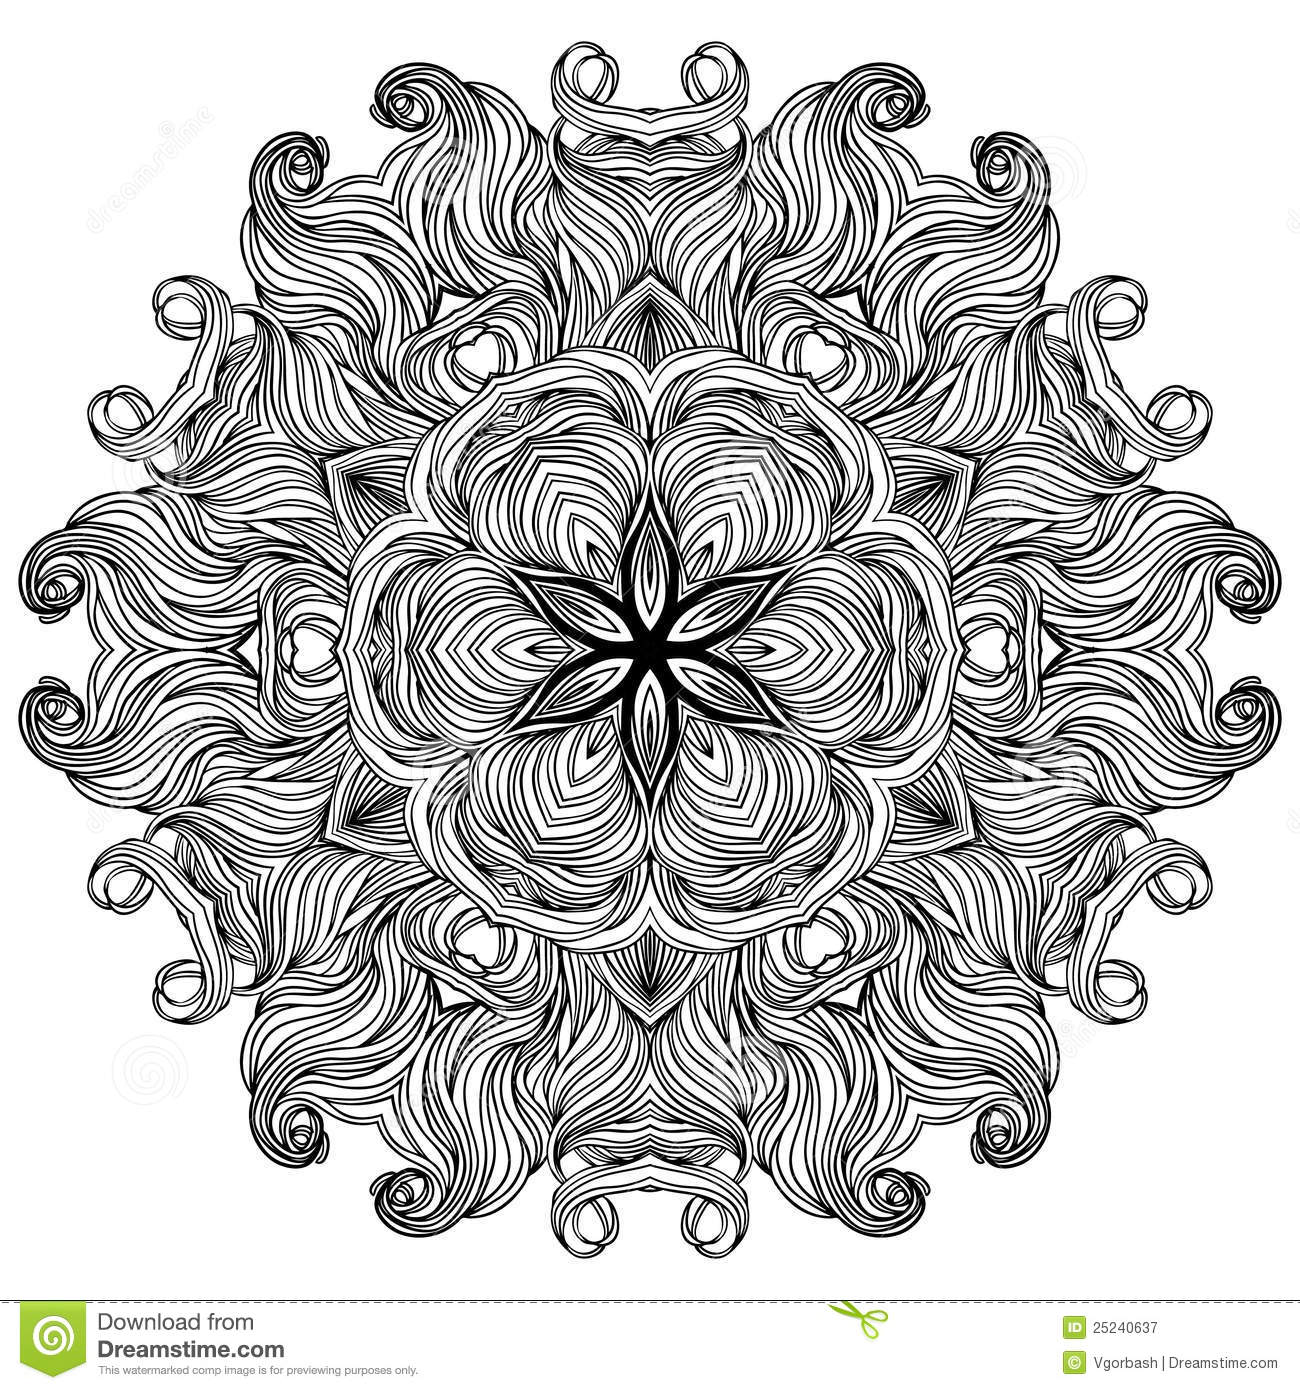 Kleurplaat Flower Ornate Lace Black And White Lines Pattern Stock Vector